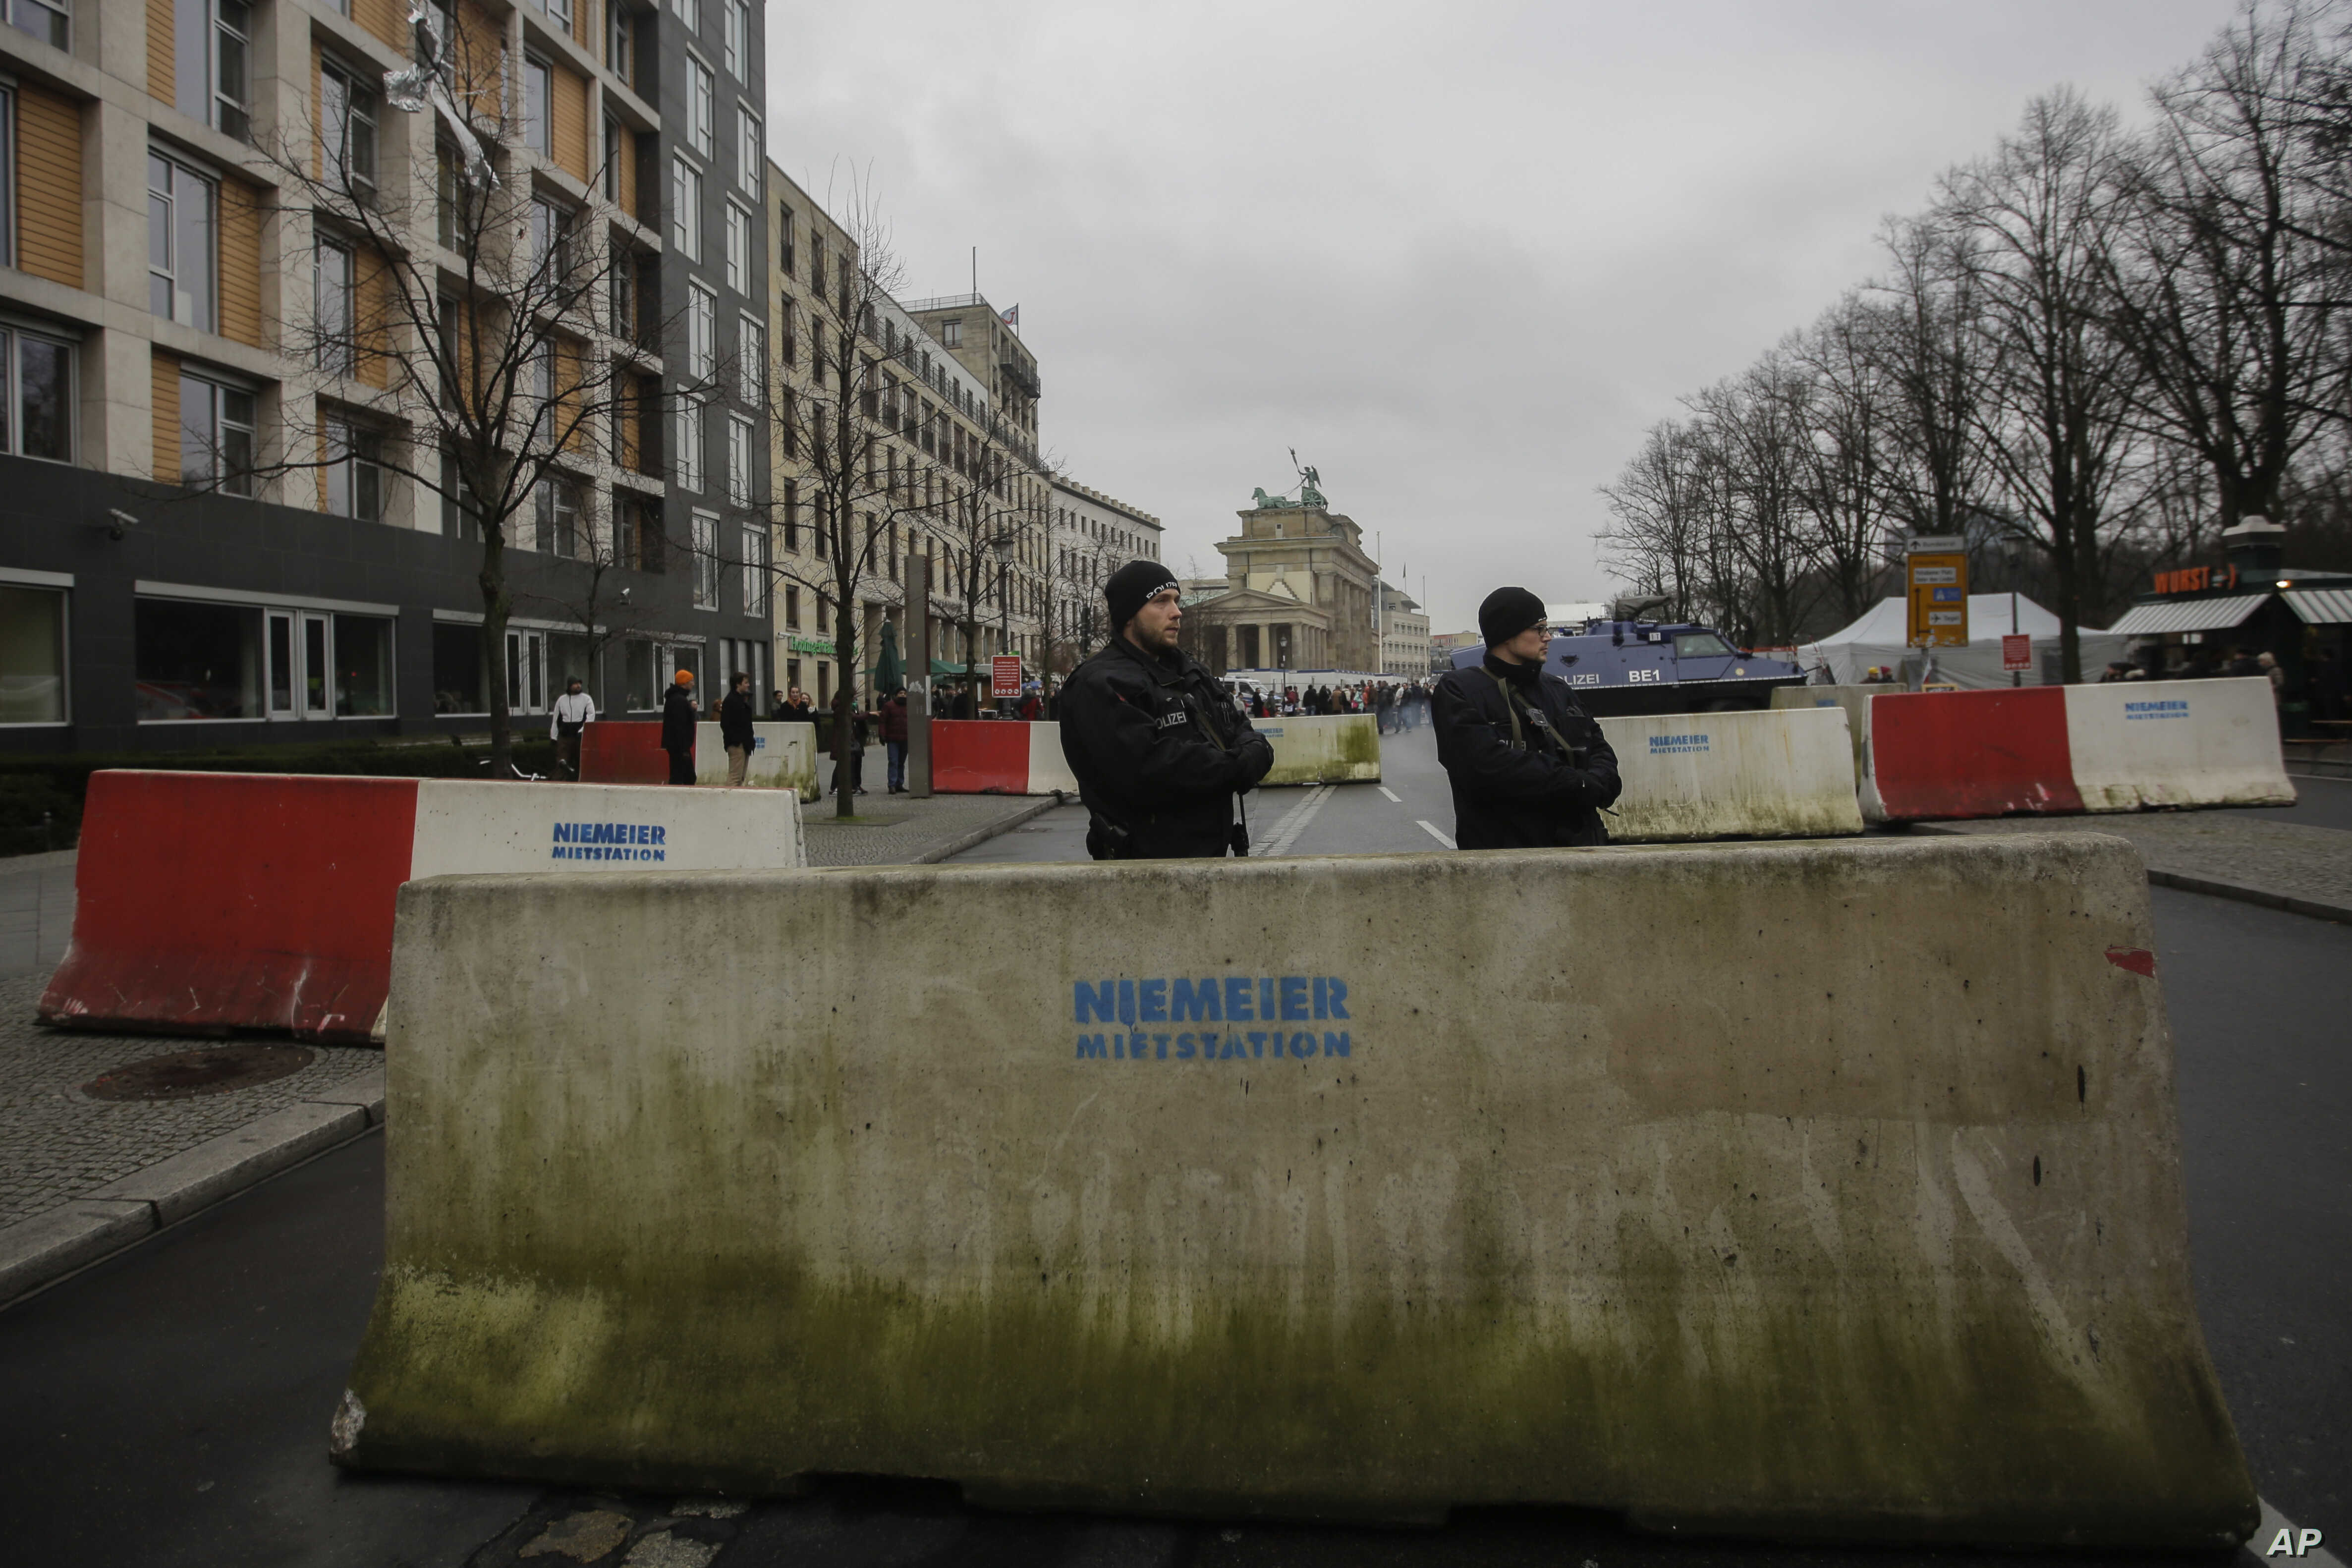 Armed police officers stand behind concrete blocks for protection near the Brandenburg Gate in Berlin, Friday, Dec. 23, 2016.